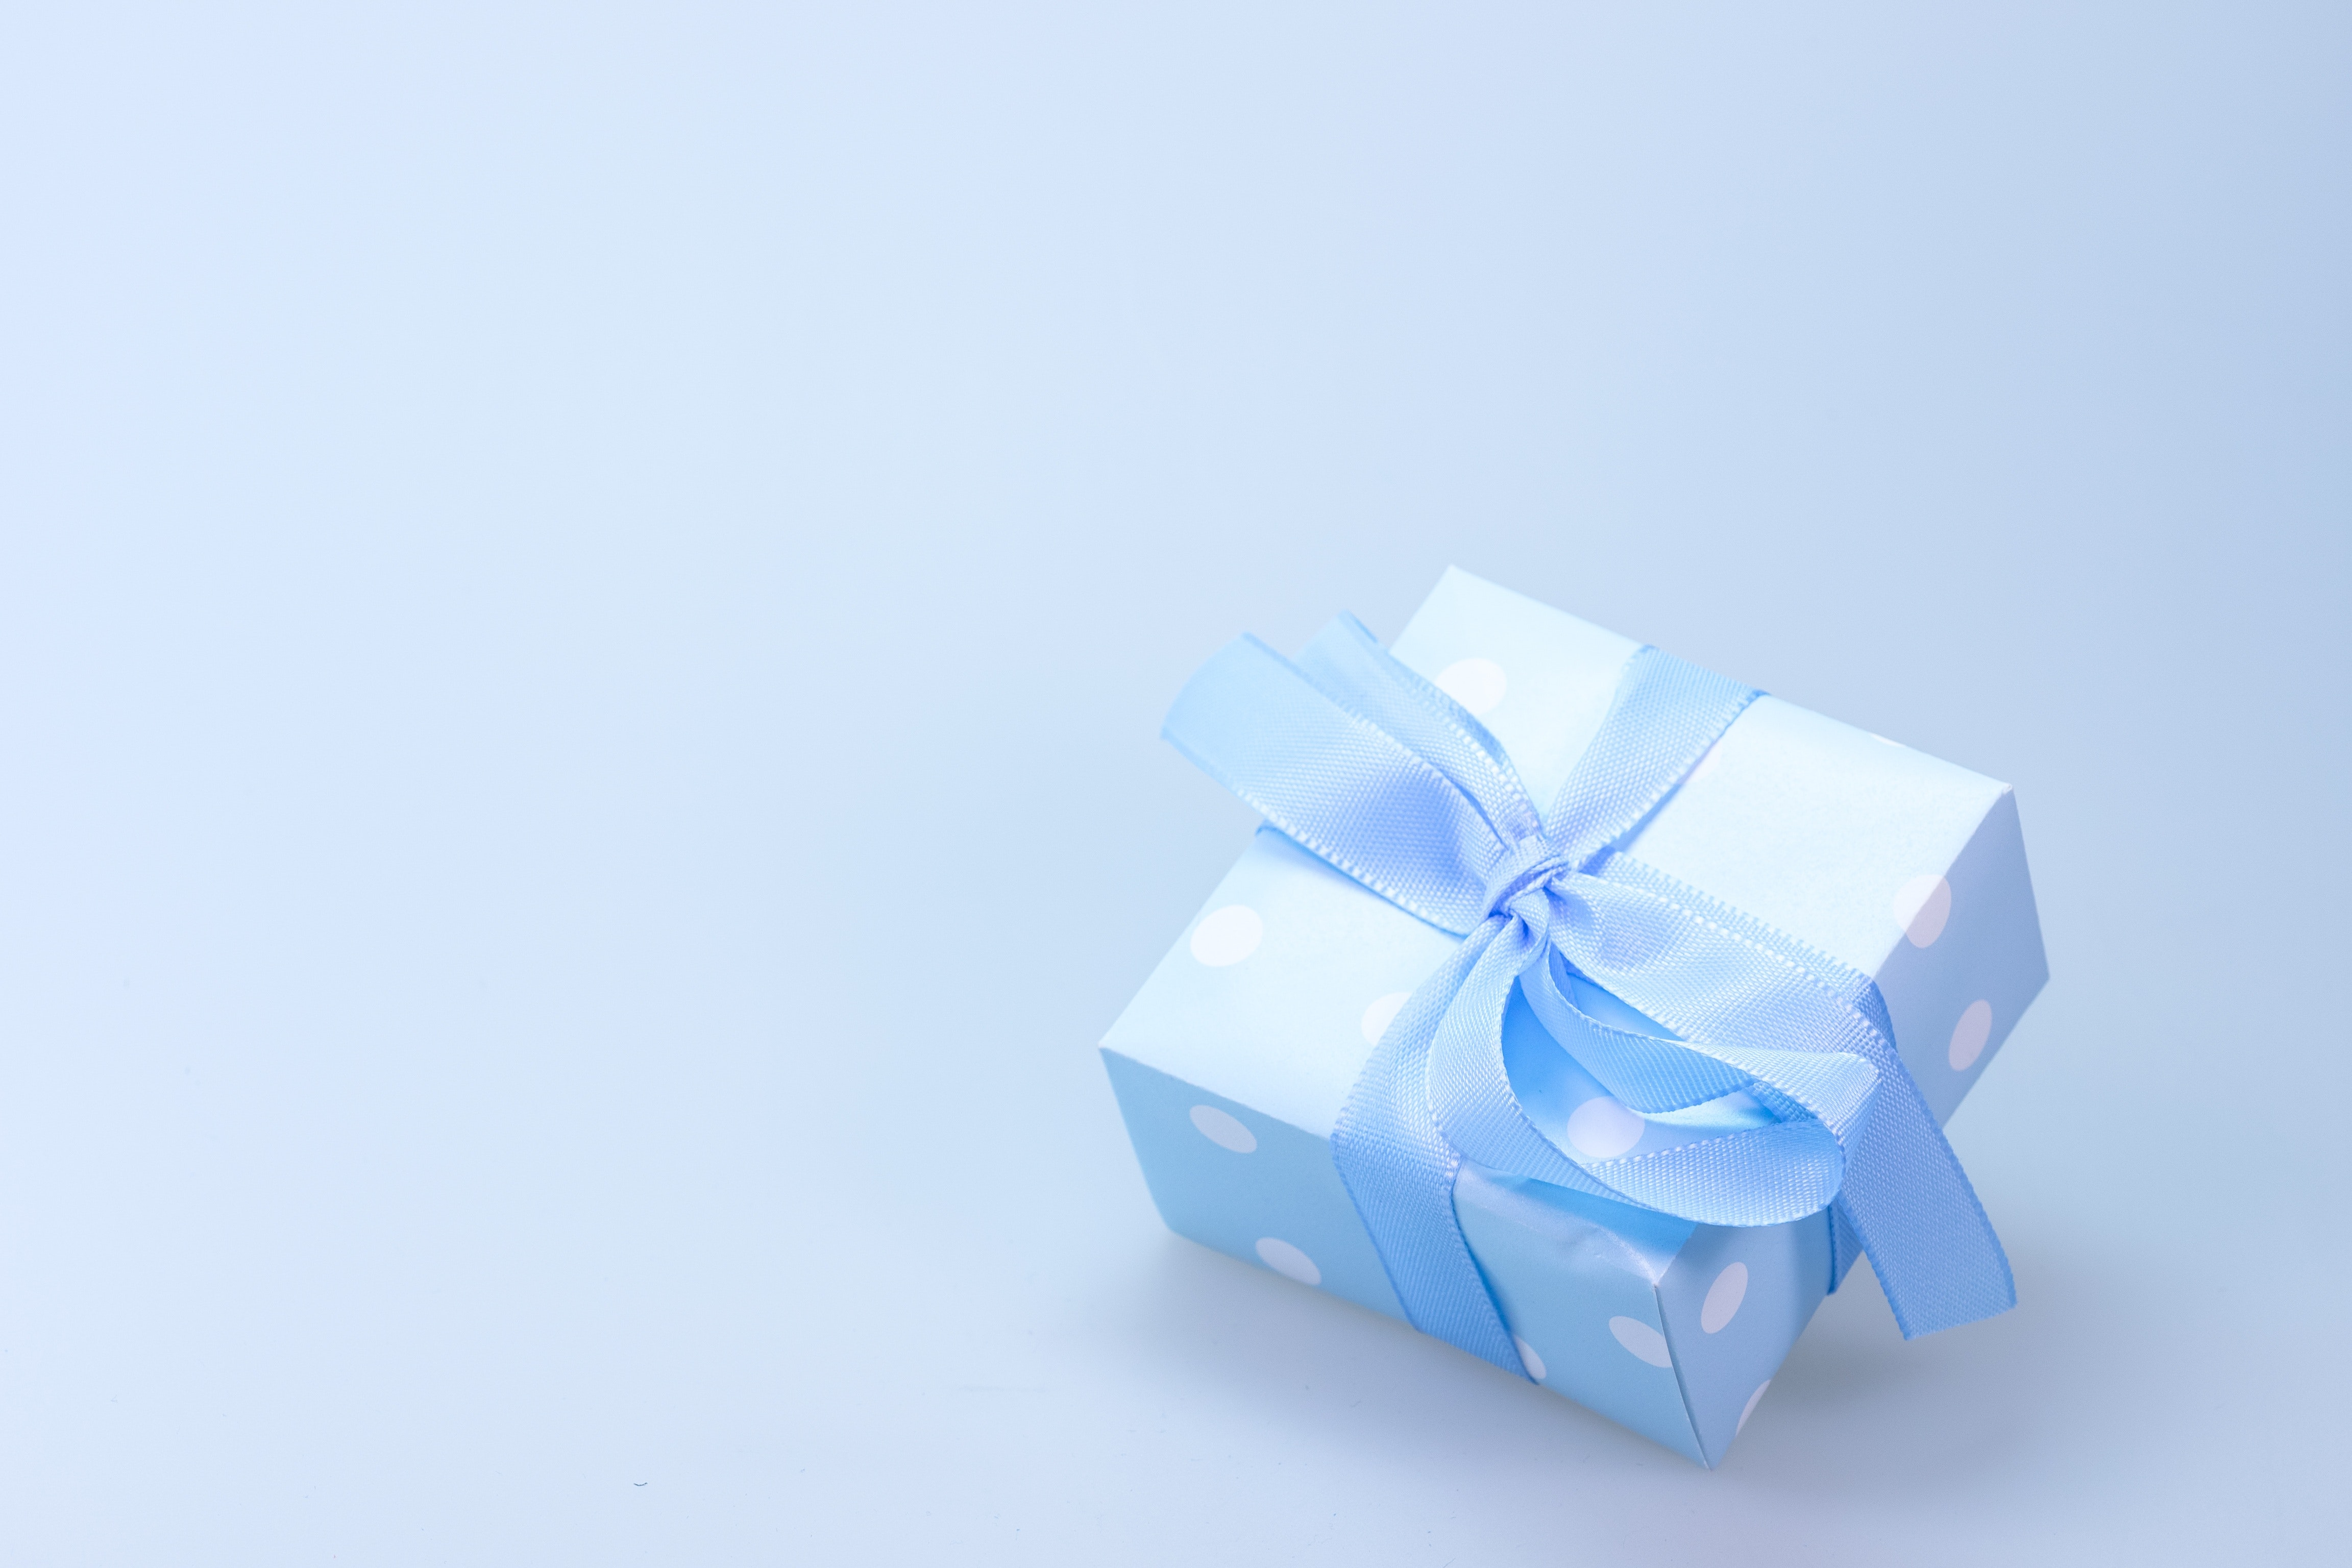 Free stock photo of box gift packaging similar photos negle Gallery